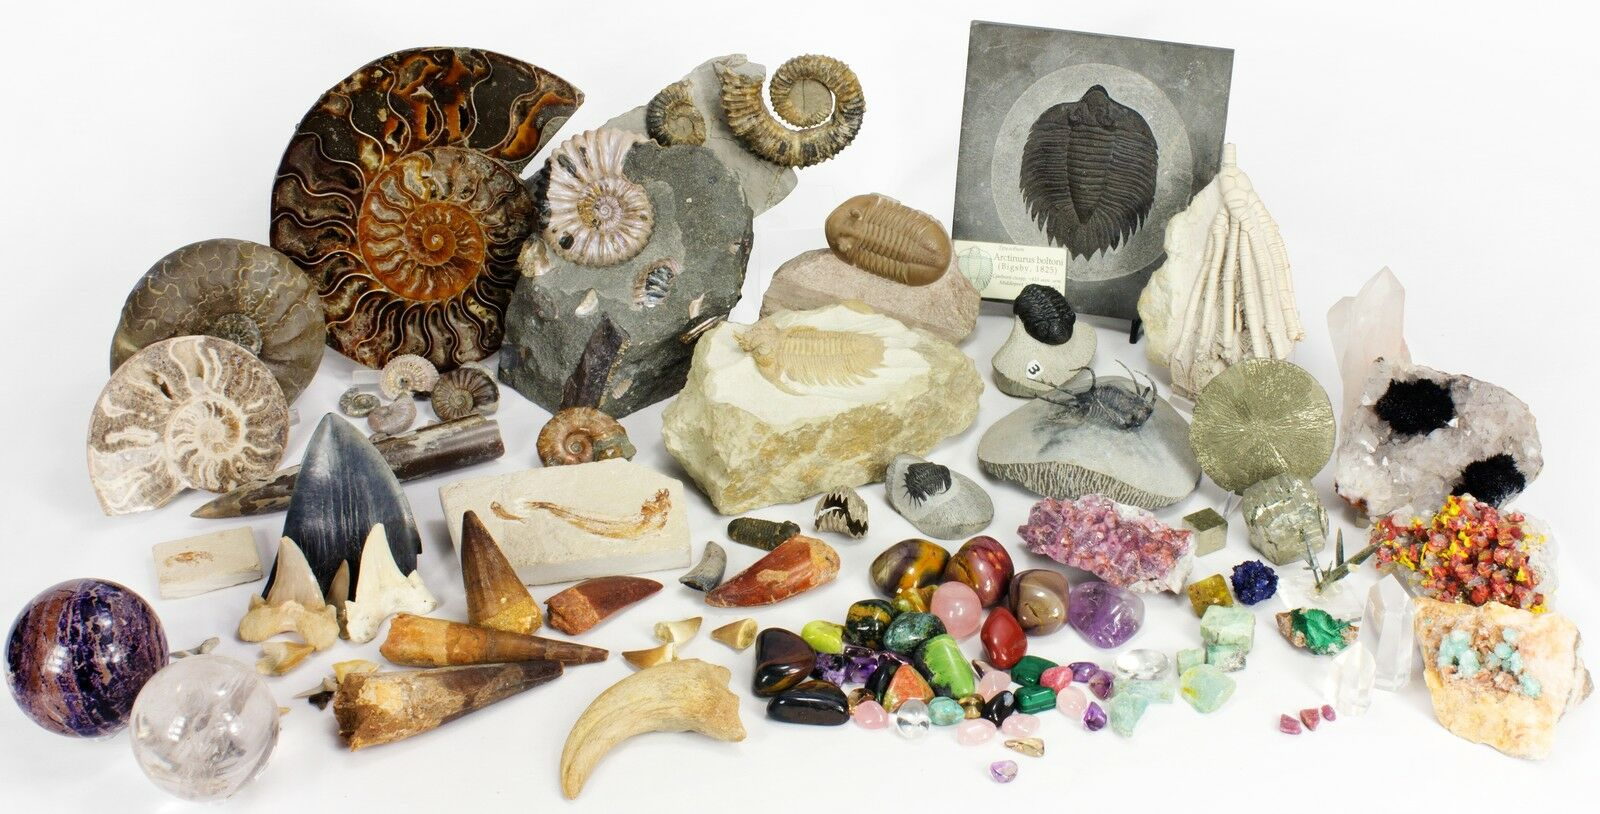 Russian fossils and minerals